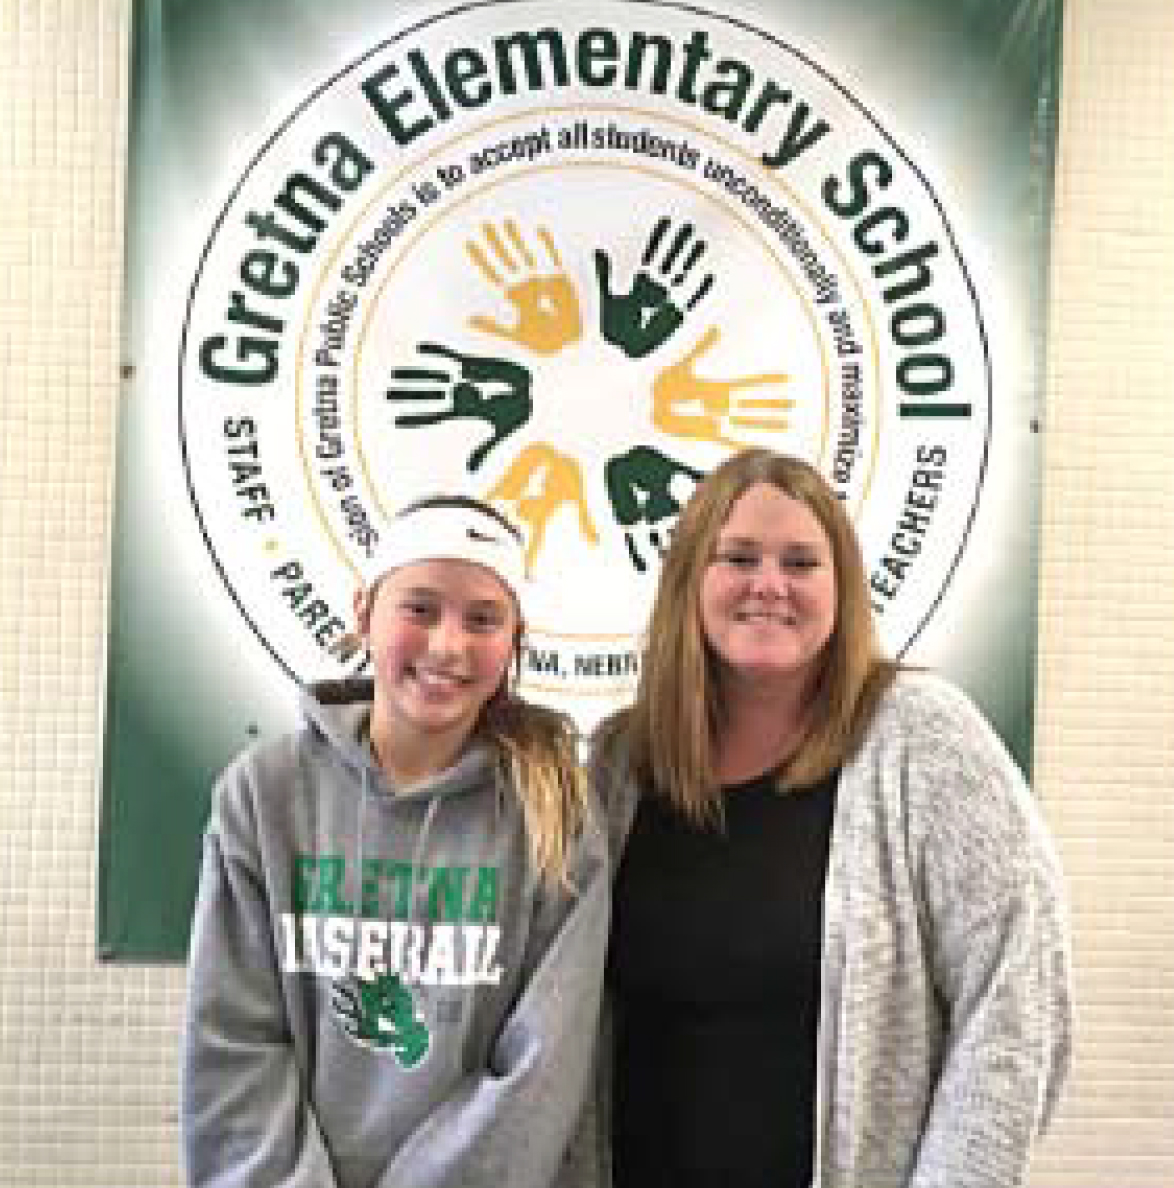 Gretna Elementary School fifth-grader Ellie Melton earns the congratulations of her<br />teacher, Stephanie Bartram, on her first place win in the Poster Contest. Ellie's parents<br />are Charlie and Andi Melton. Her poster is on a billboard near 78th and Dodge Streets. (Photo by Lorraine Boyd)